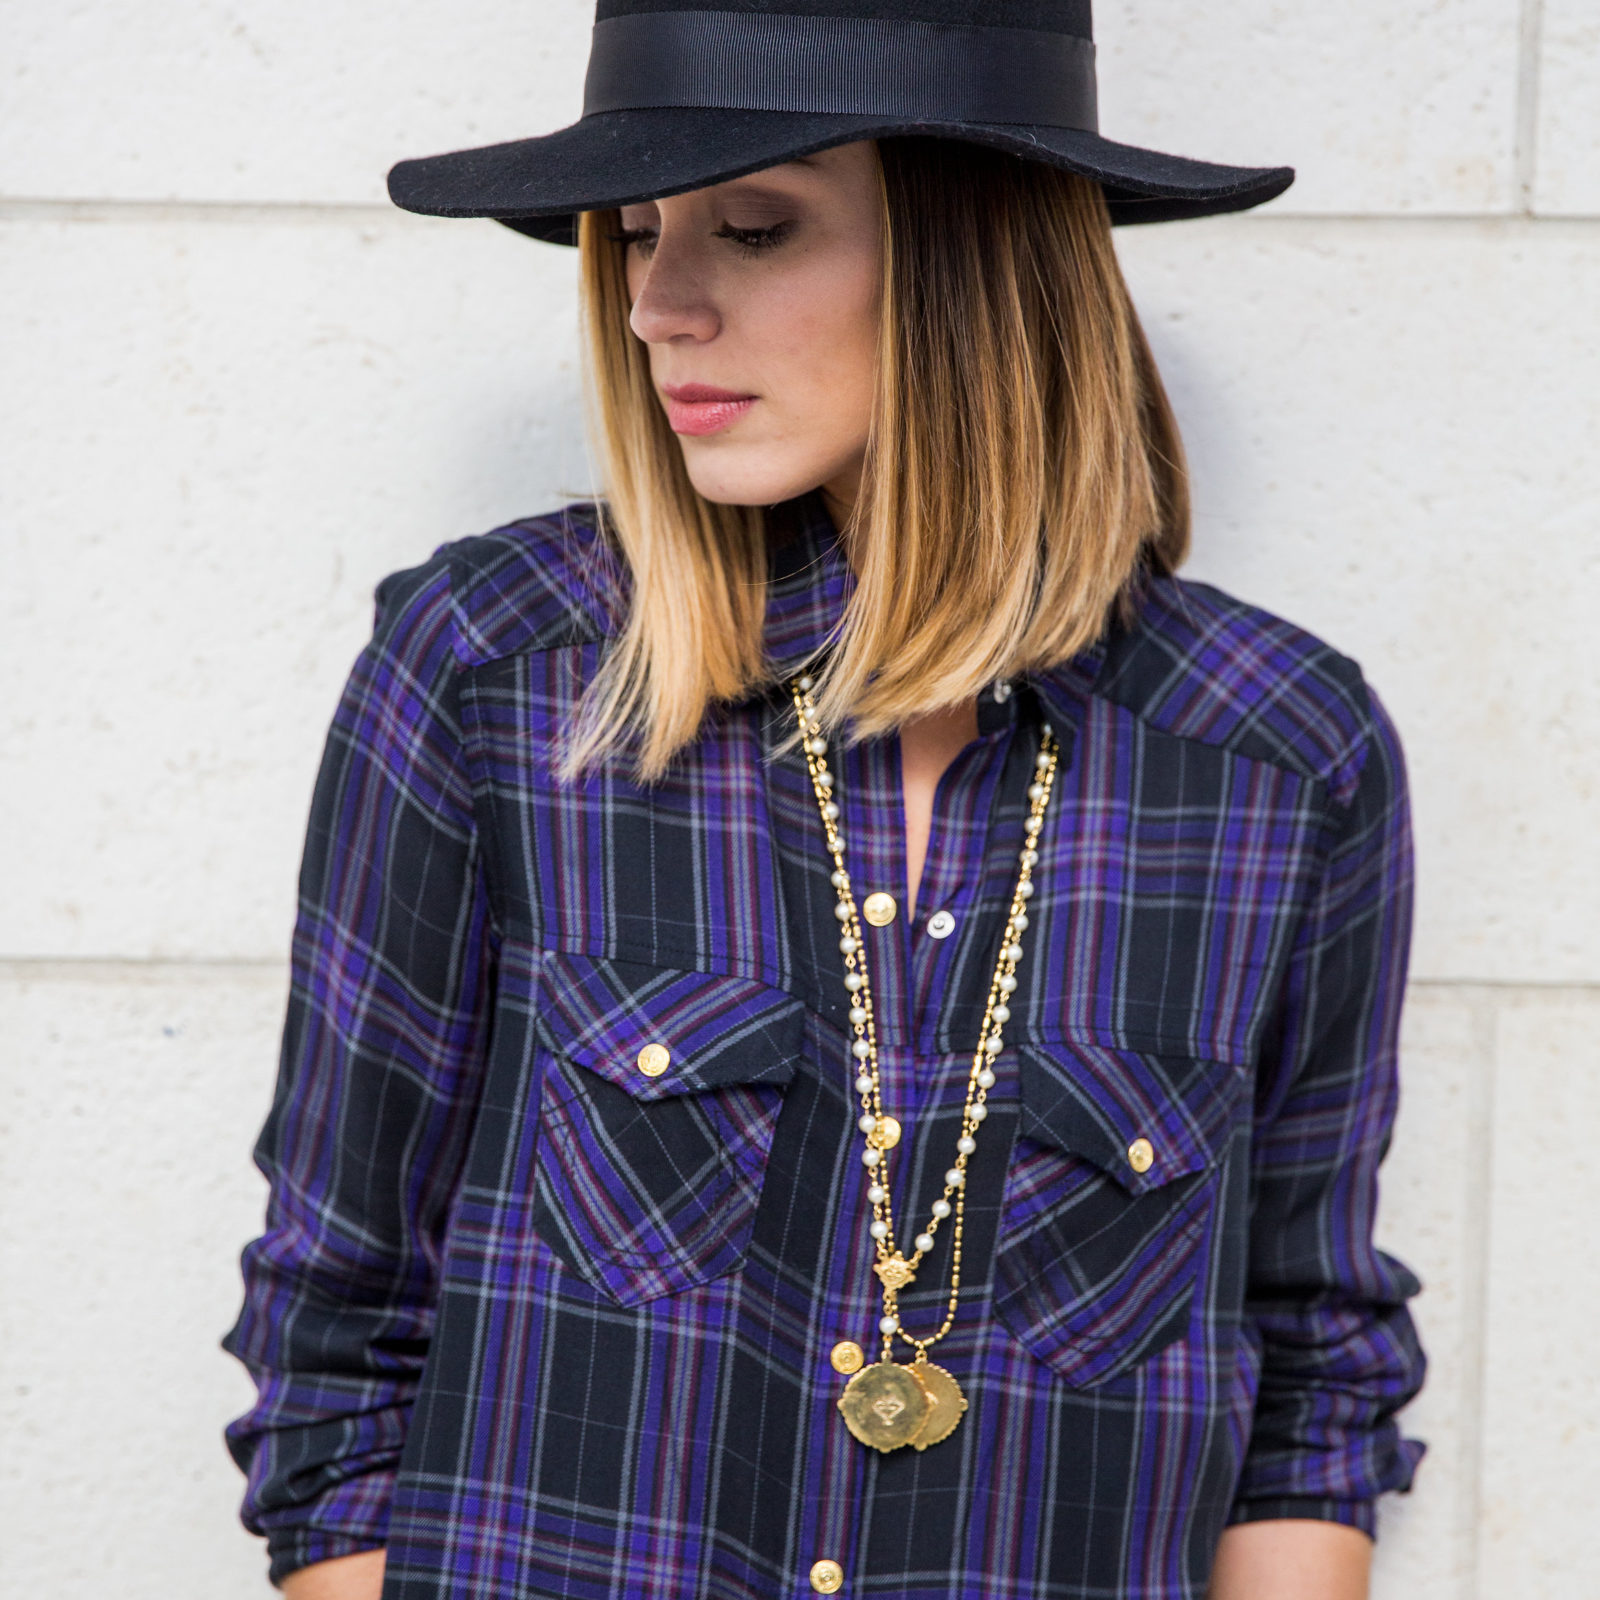 Plaid shirt outfit Fall look